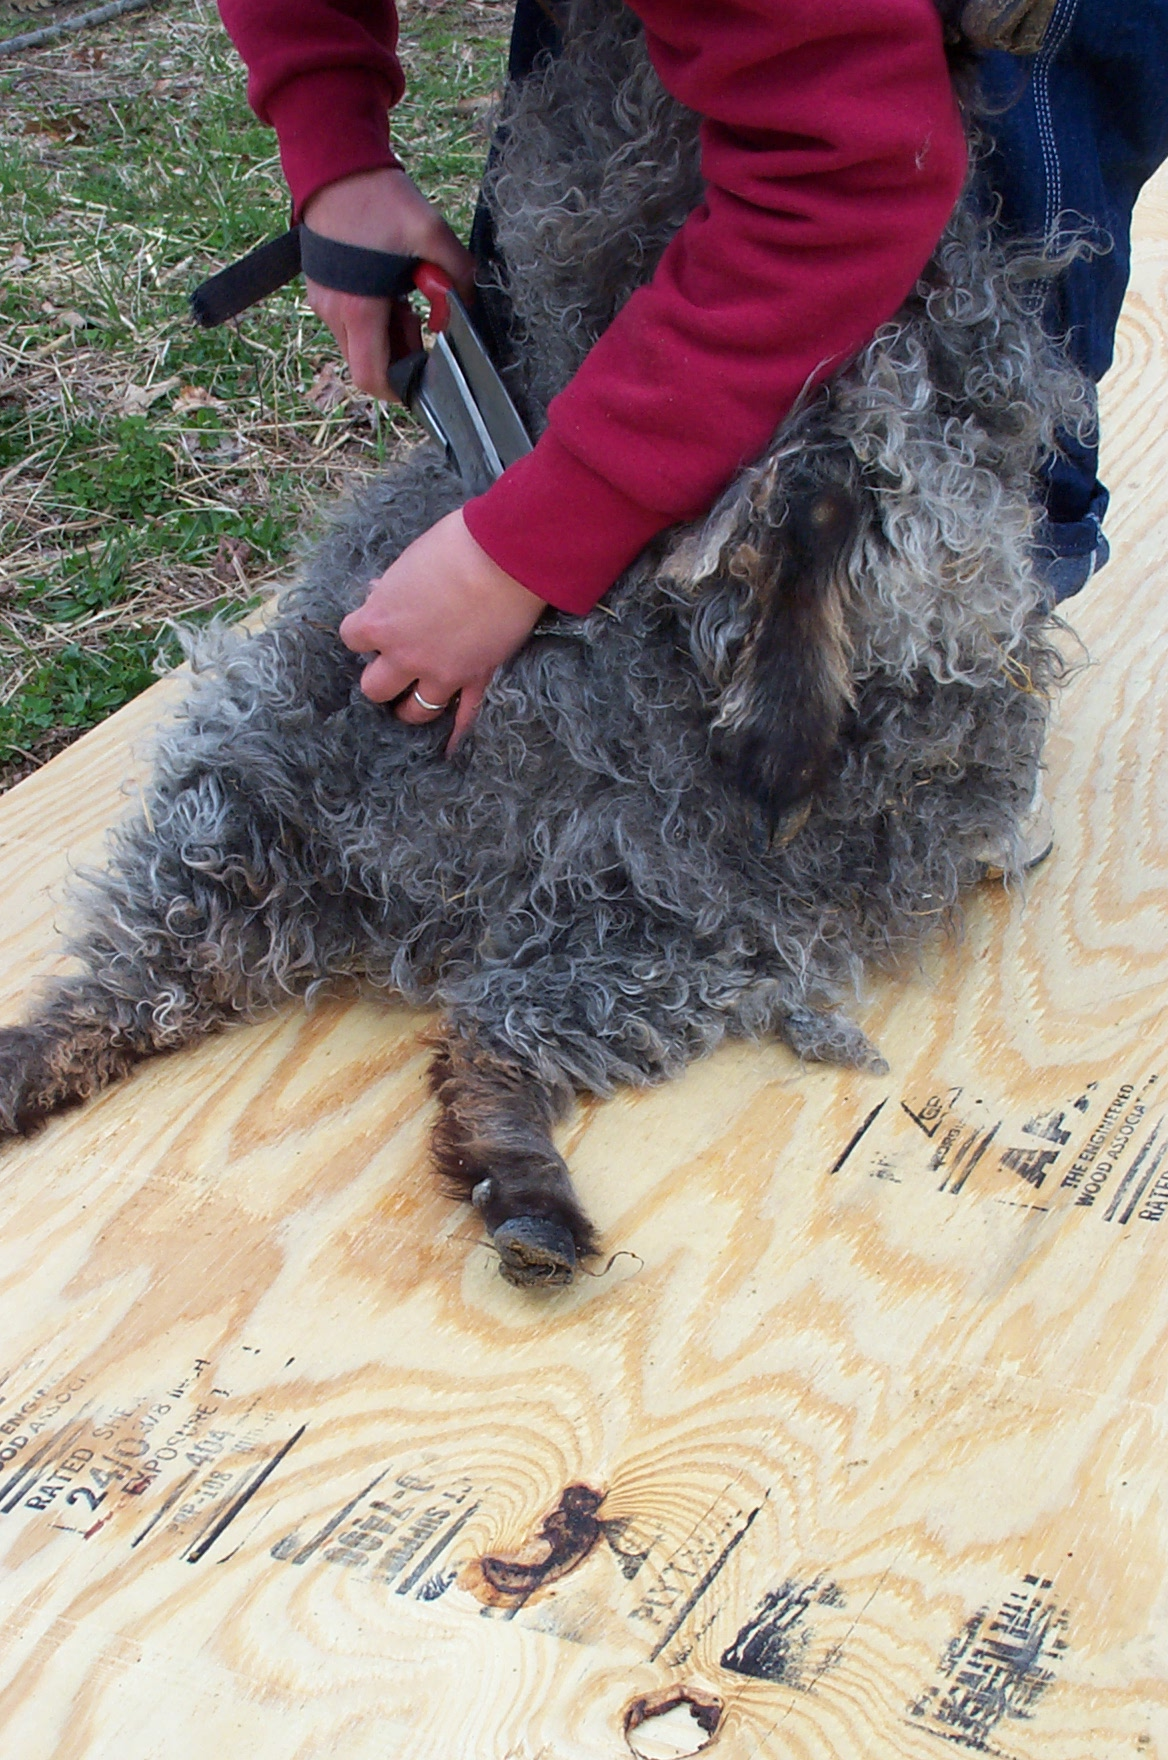 starting to shear a goat's stomach